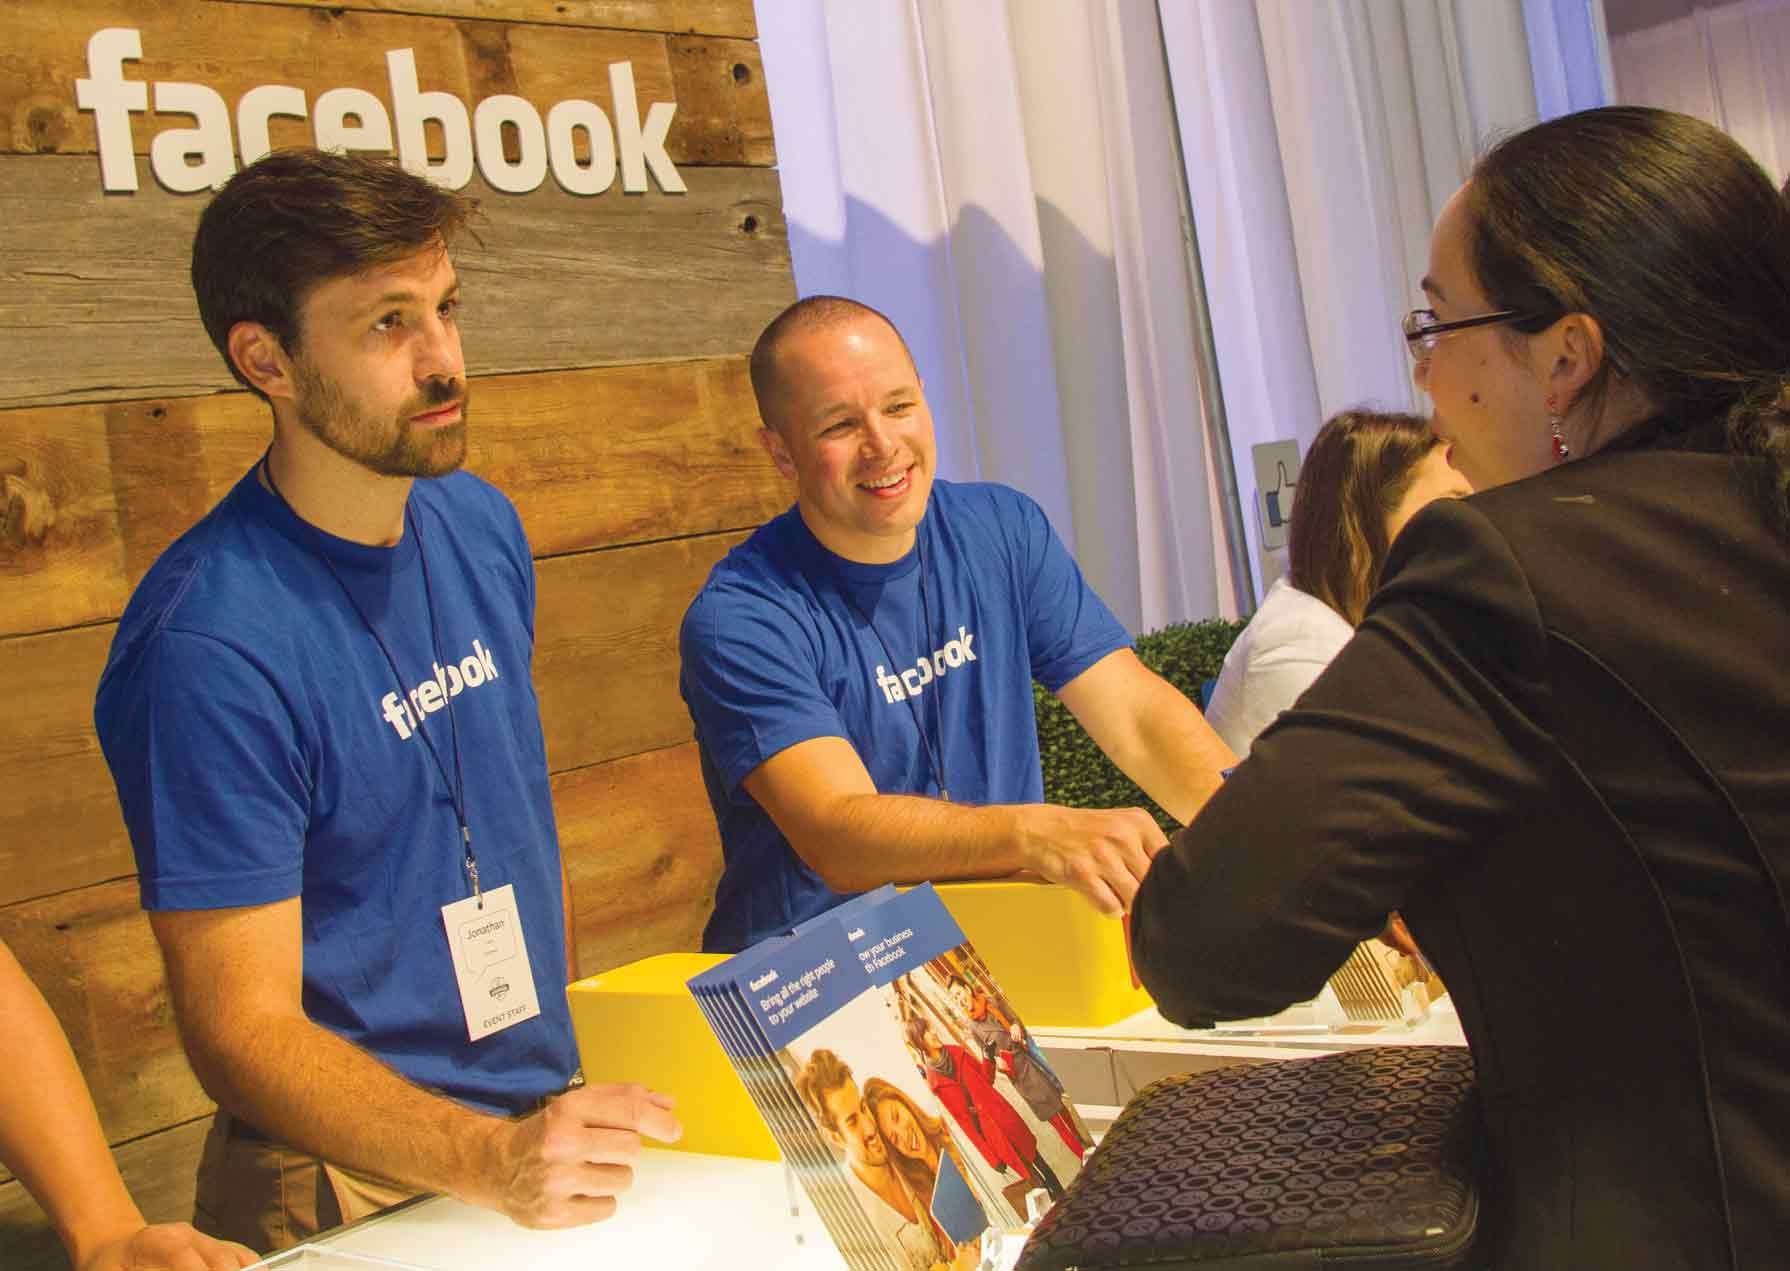 Facebook faces small businesses